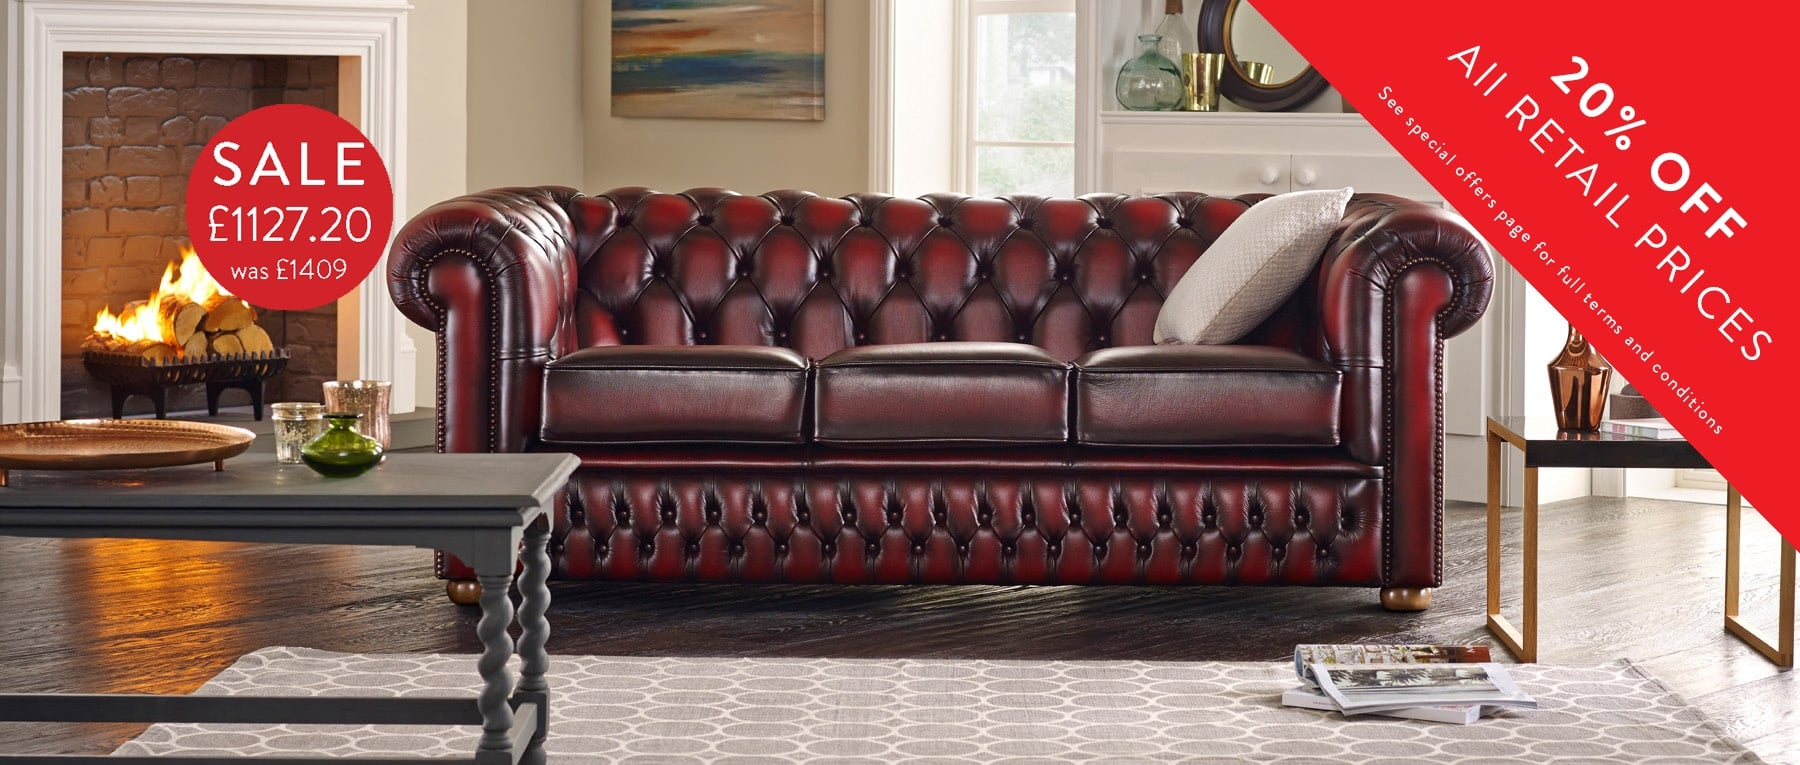 The Ultimate British Chesterfield